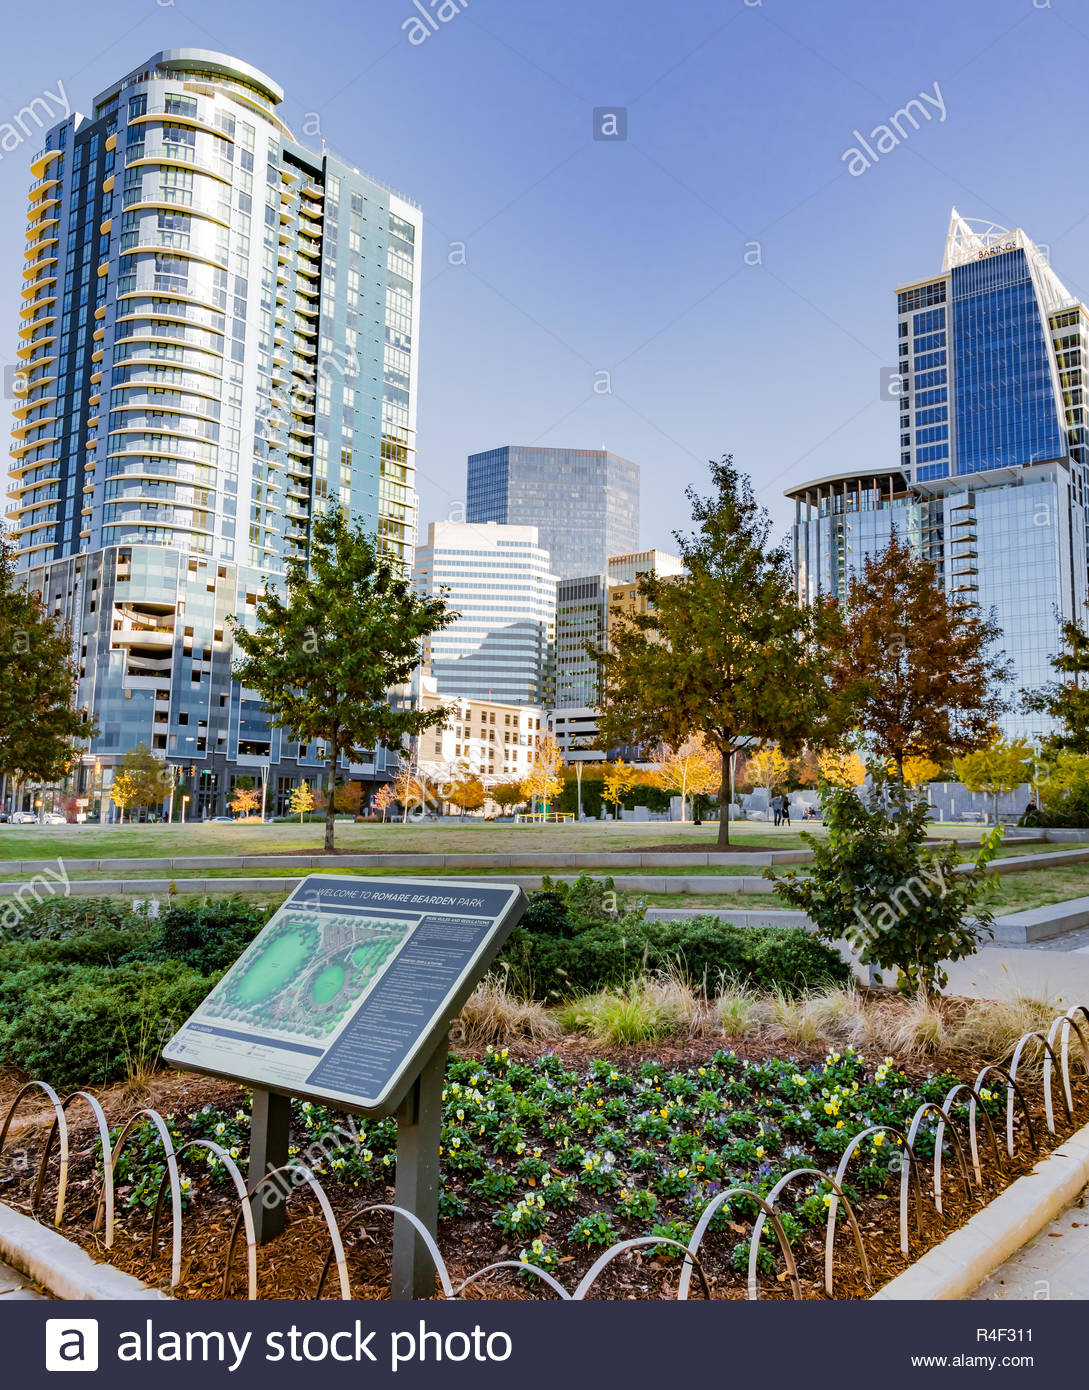 CHARLOTTE NC USA 112118 Romare Bearden Park with skyscrapers 1089x1390